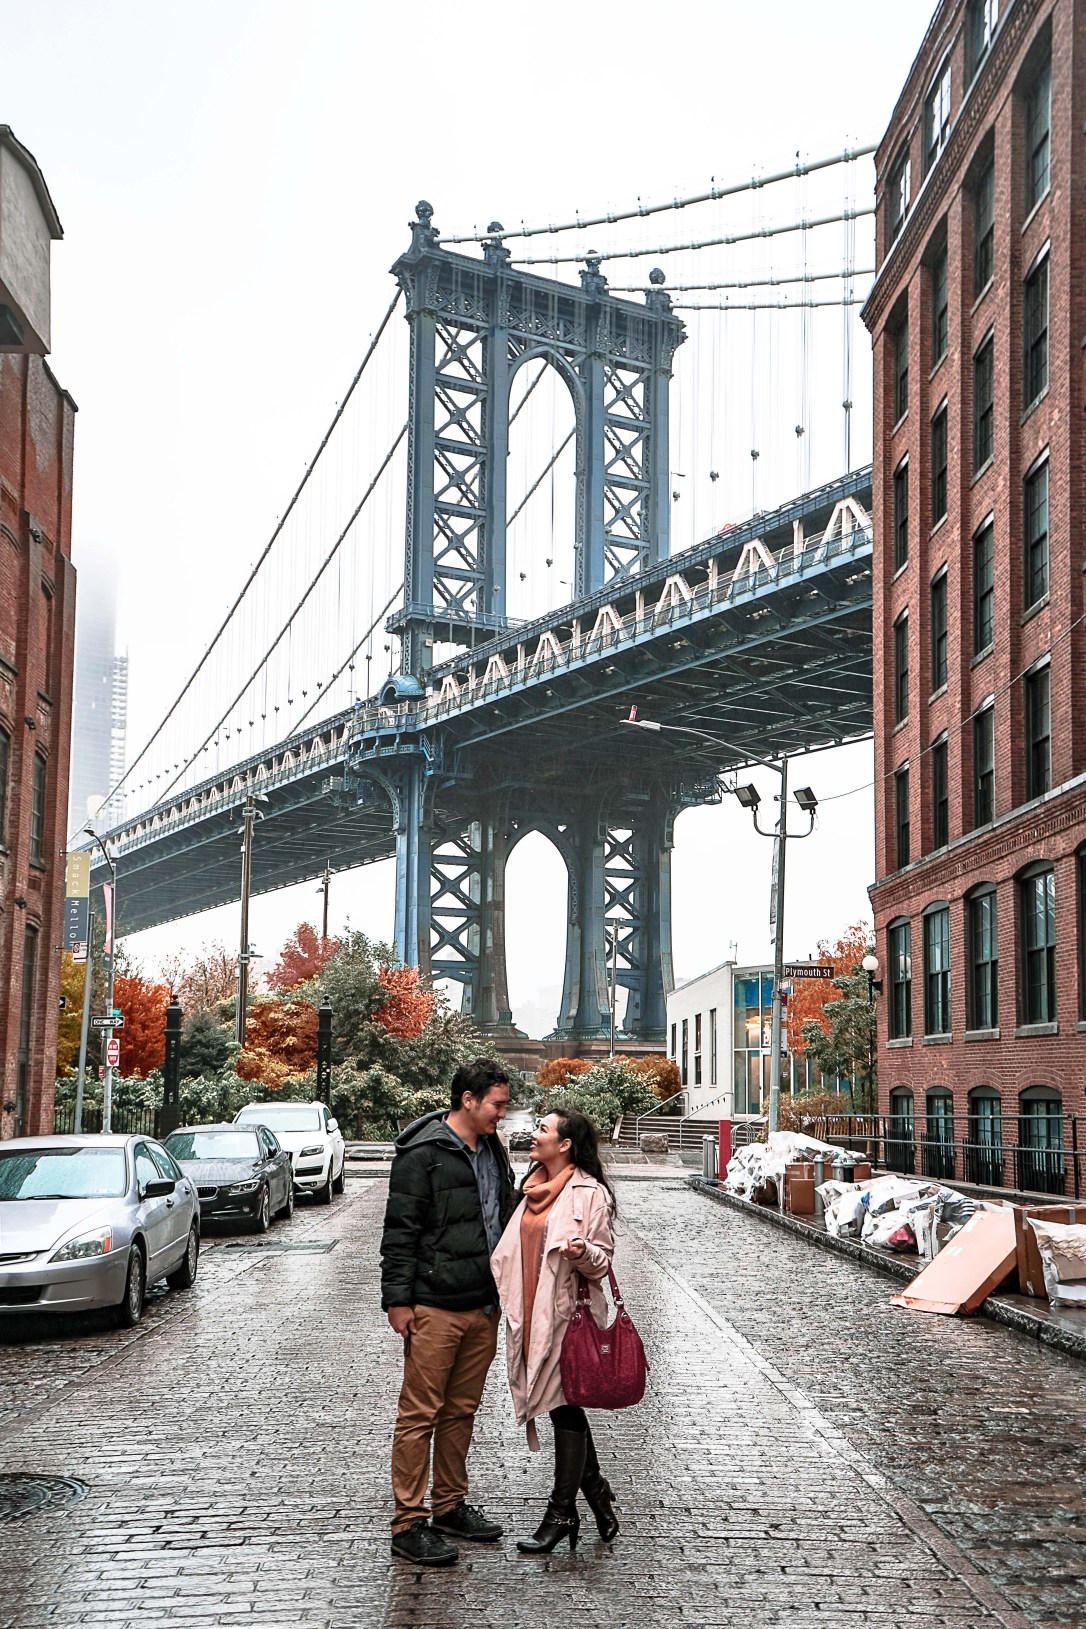 dumbo-manhattan-bridge-shot-nyc